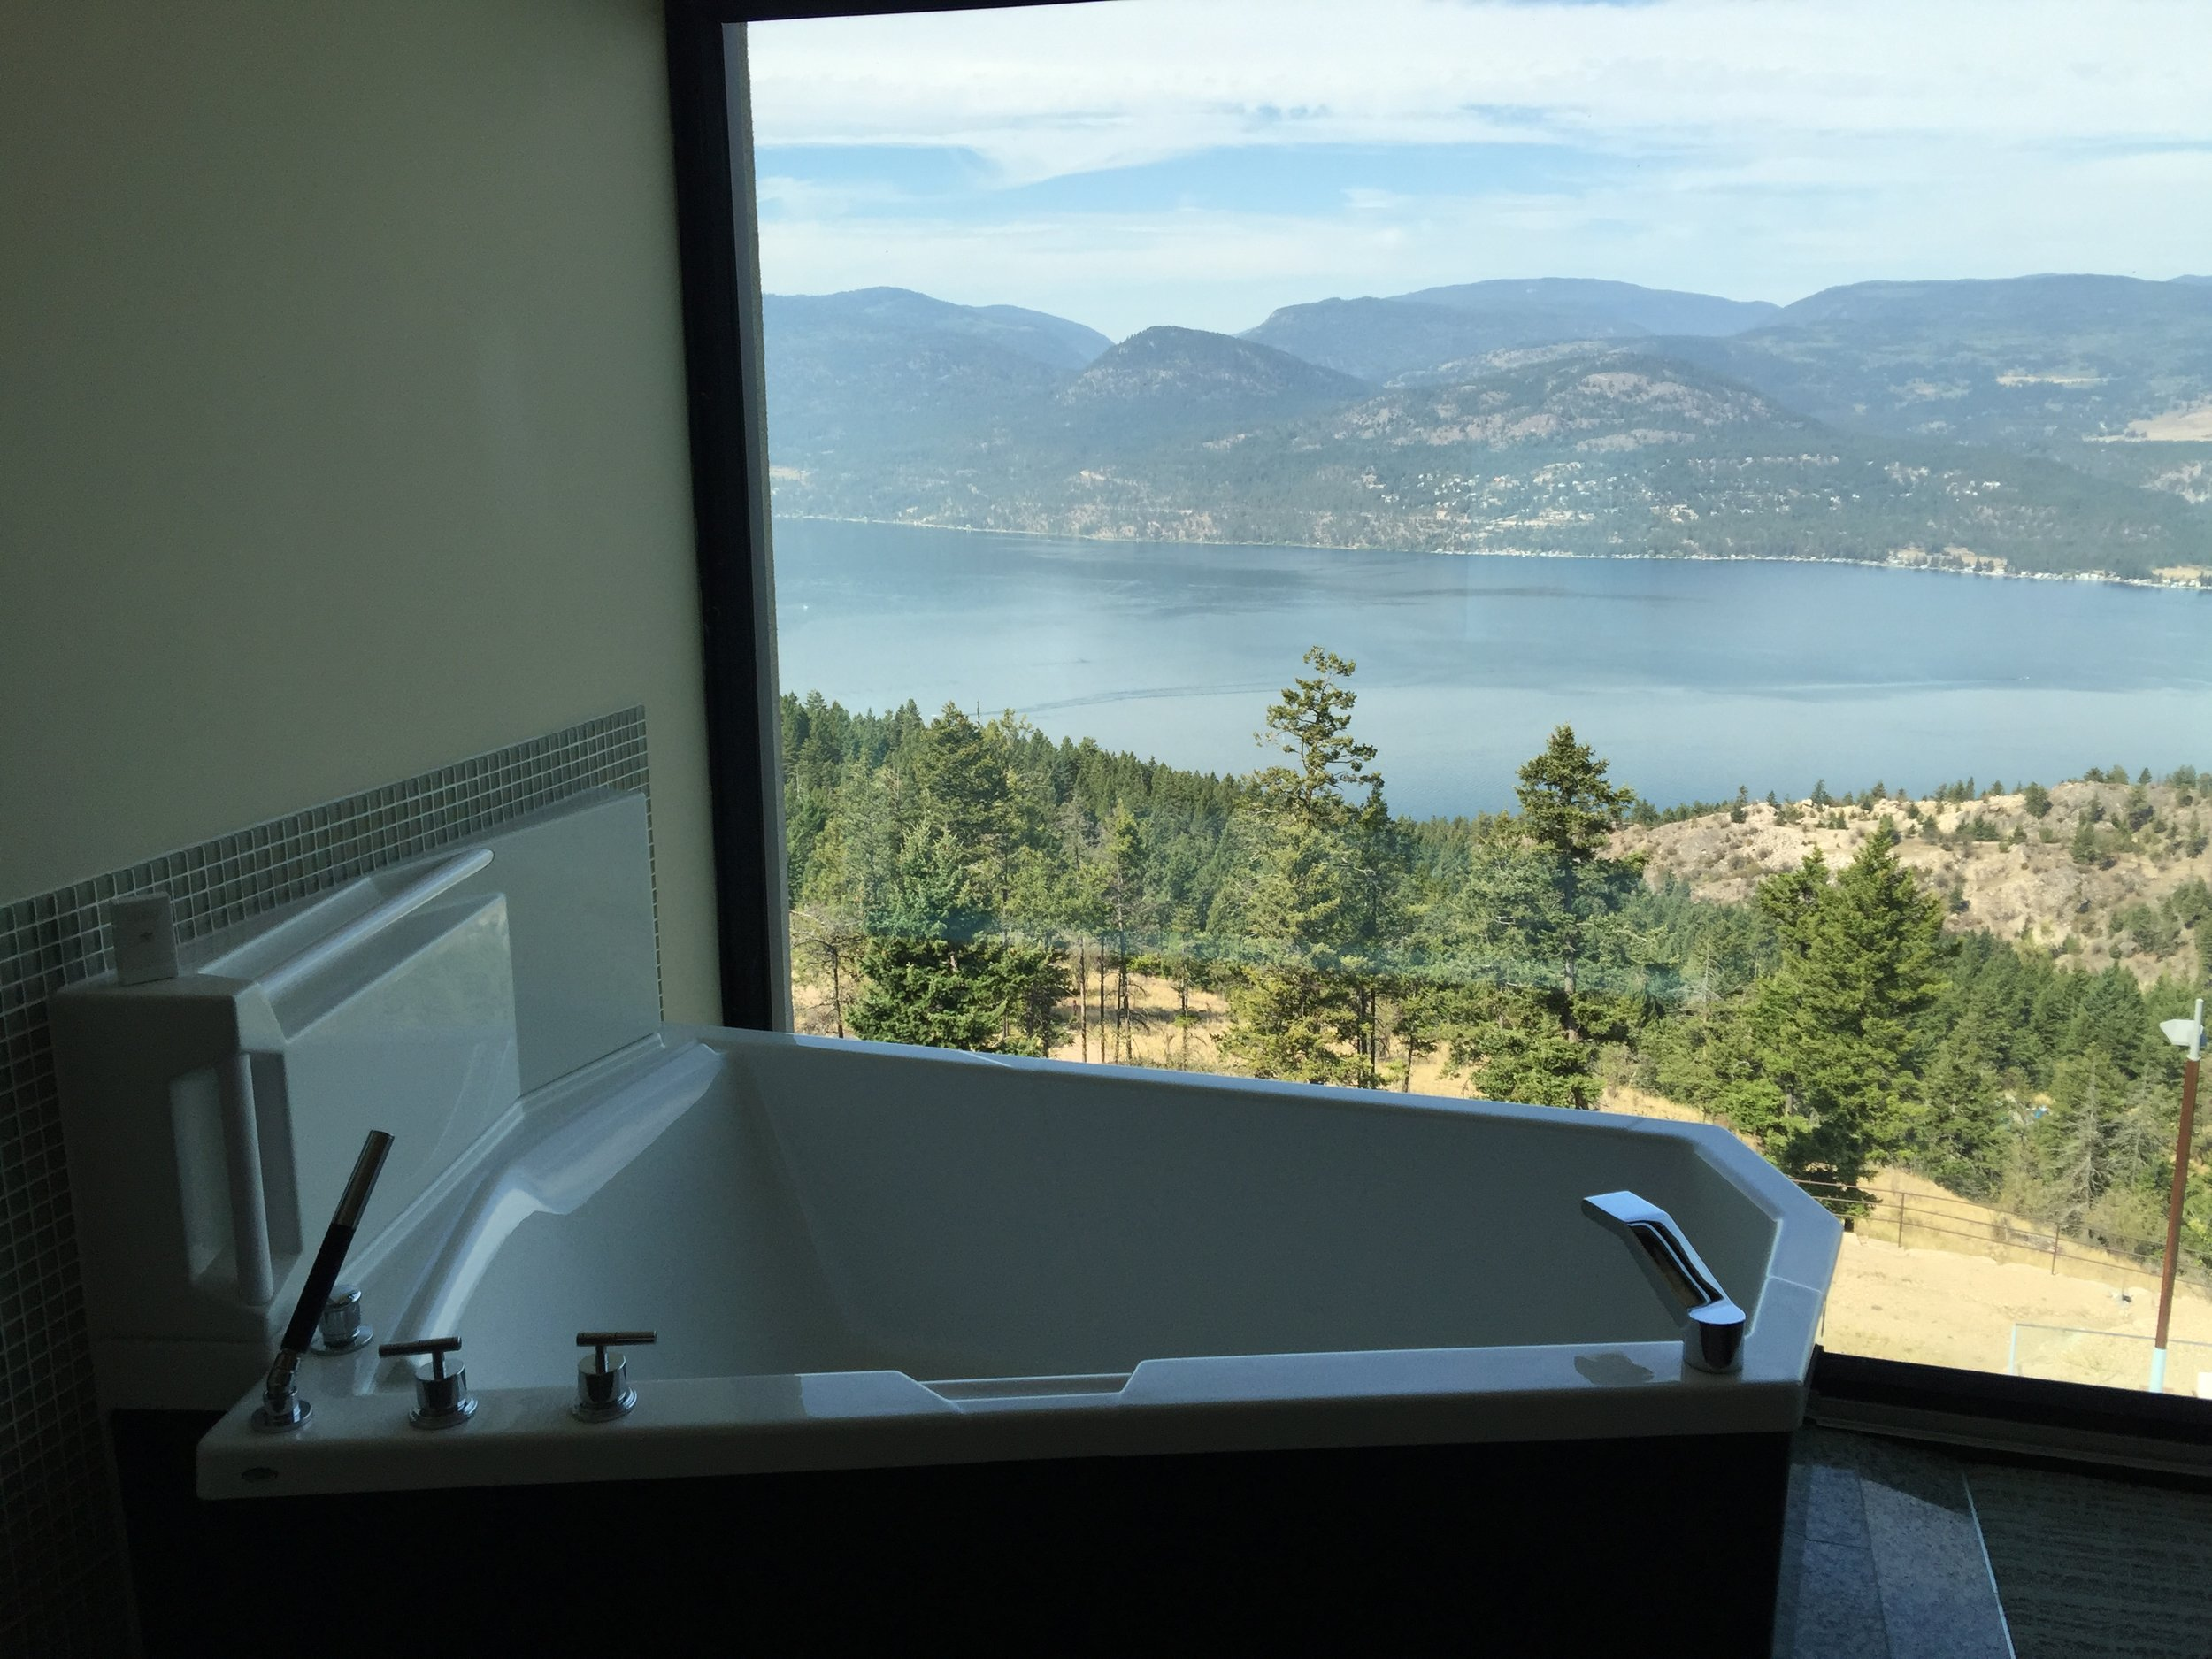 A view from a standard room at the Sparkling Hill Resort.  Below is Okanagan Lake.